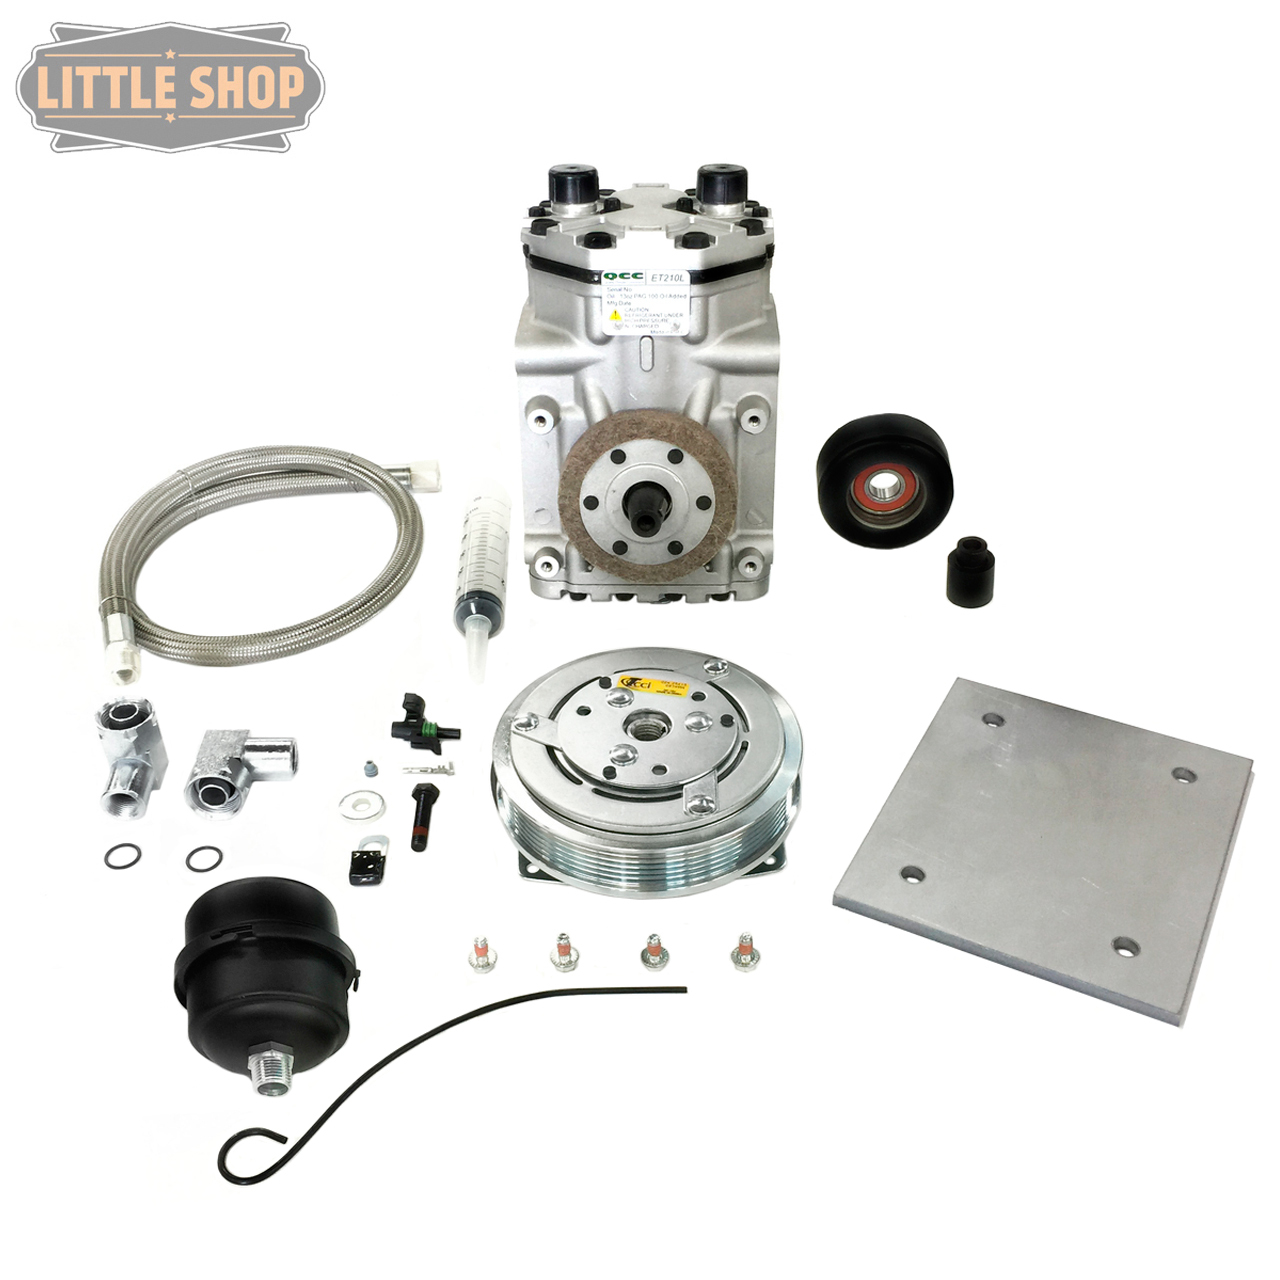 LSMFG-UnivEDC D.I.Y. Engine Driven Compressor Kit